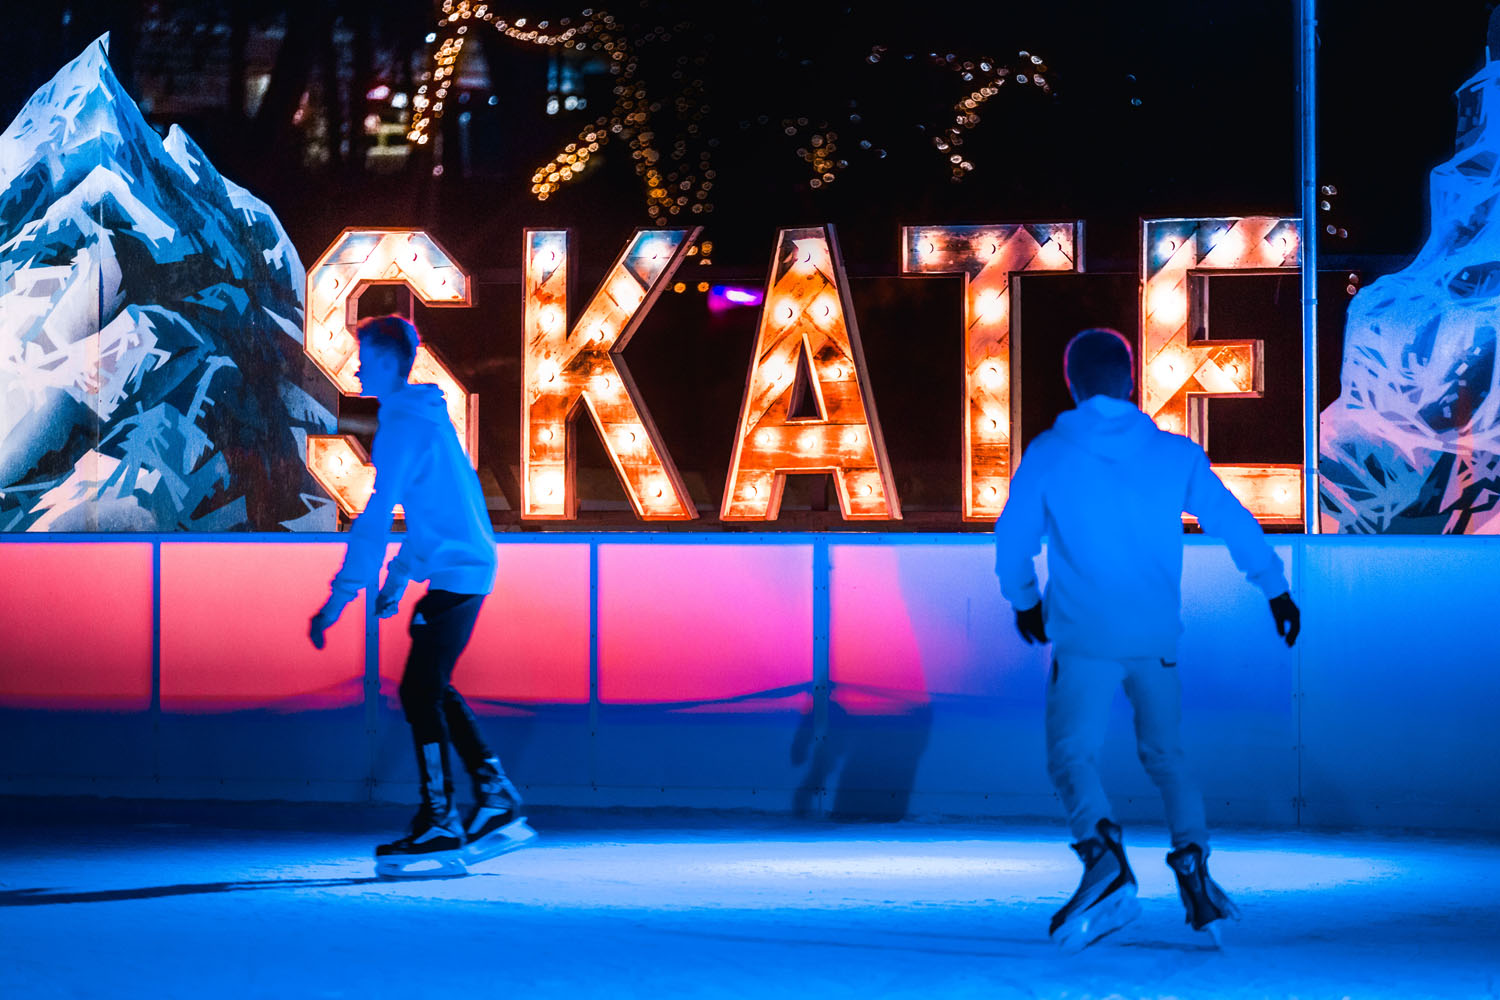 Large illuminated SKATE letters at an outdoor skating rink.